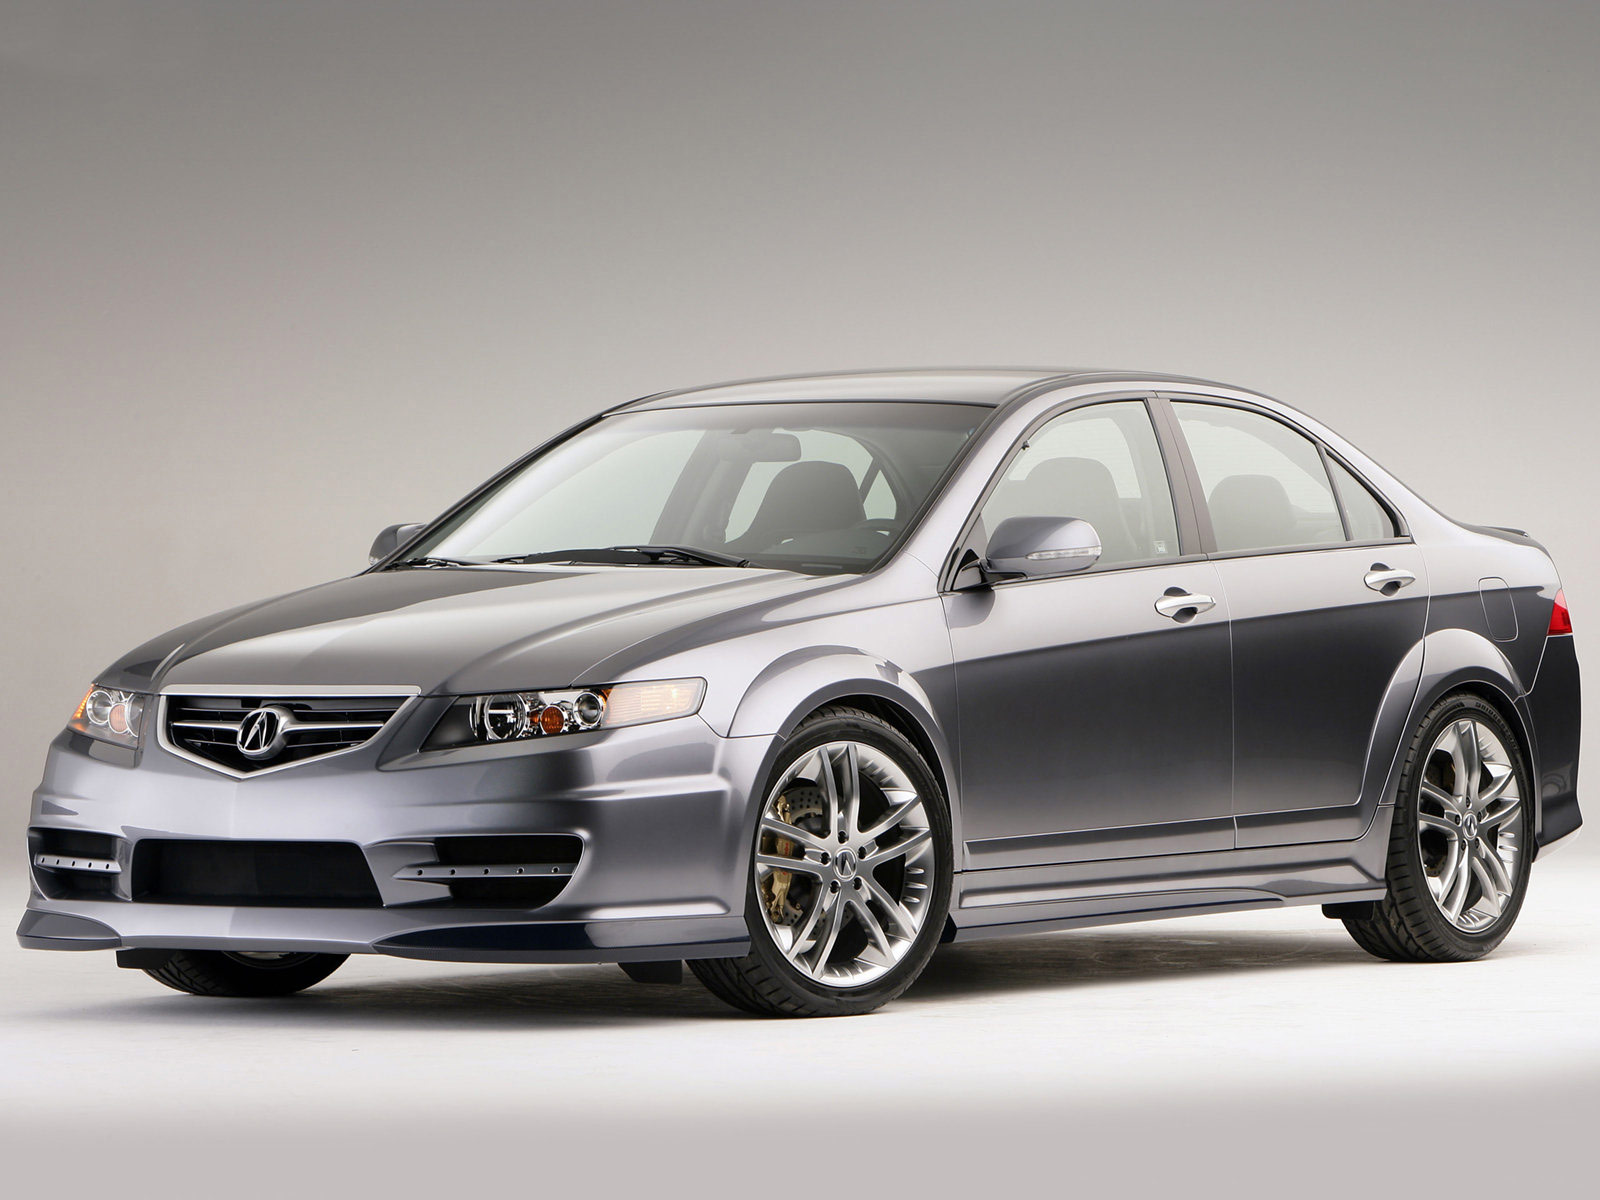 2005 acura tsx a spec concept car insurance. Black Bedroom Furniture Sets. Home Design Ideas